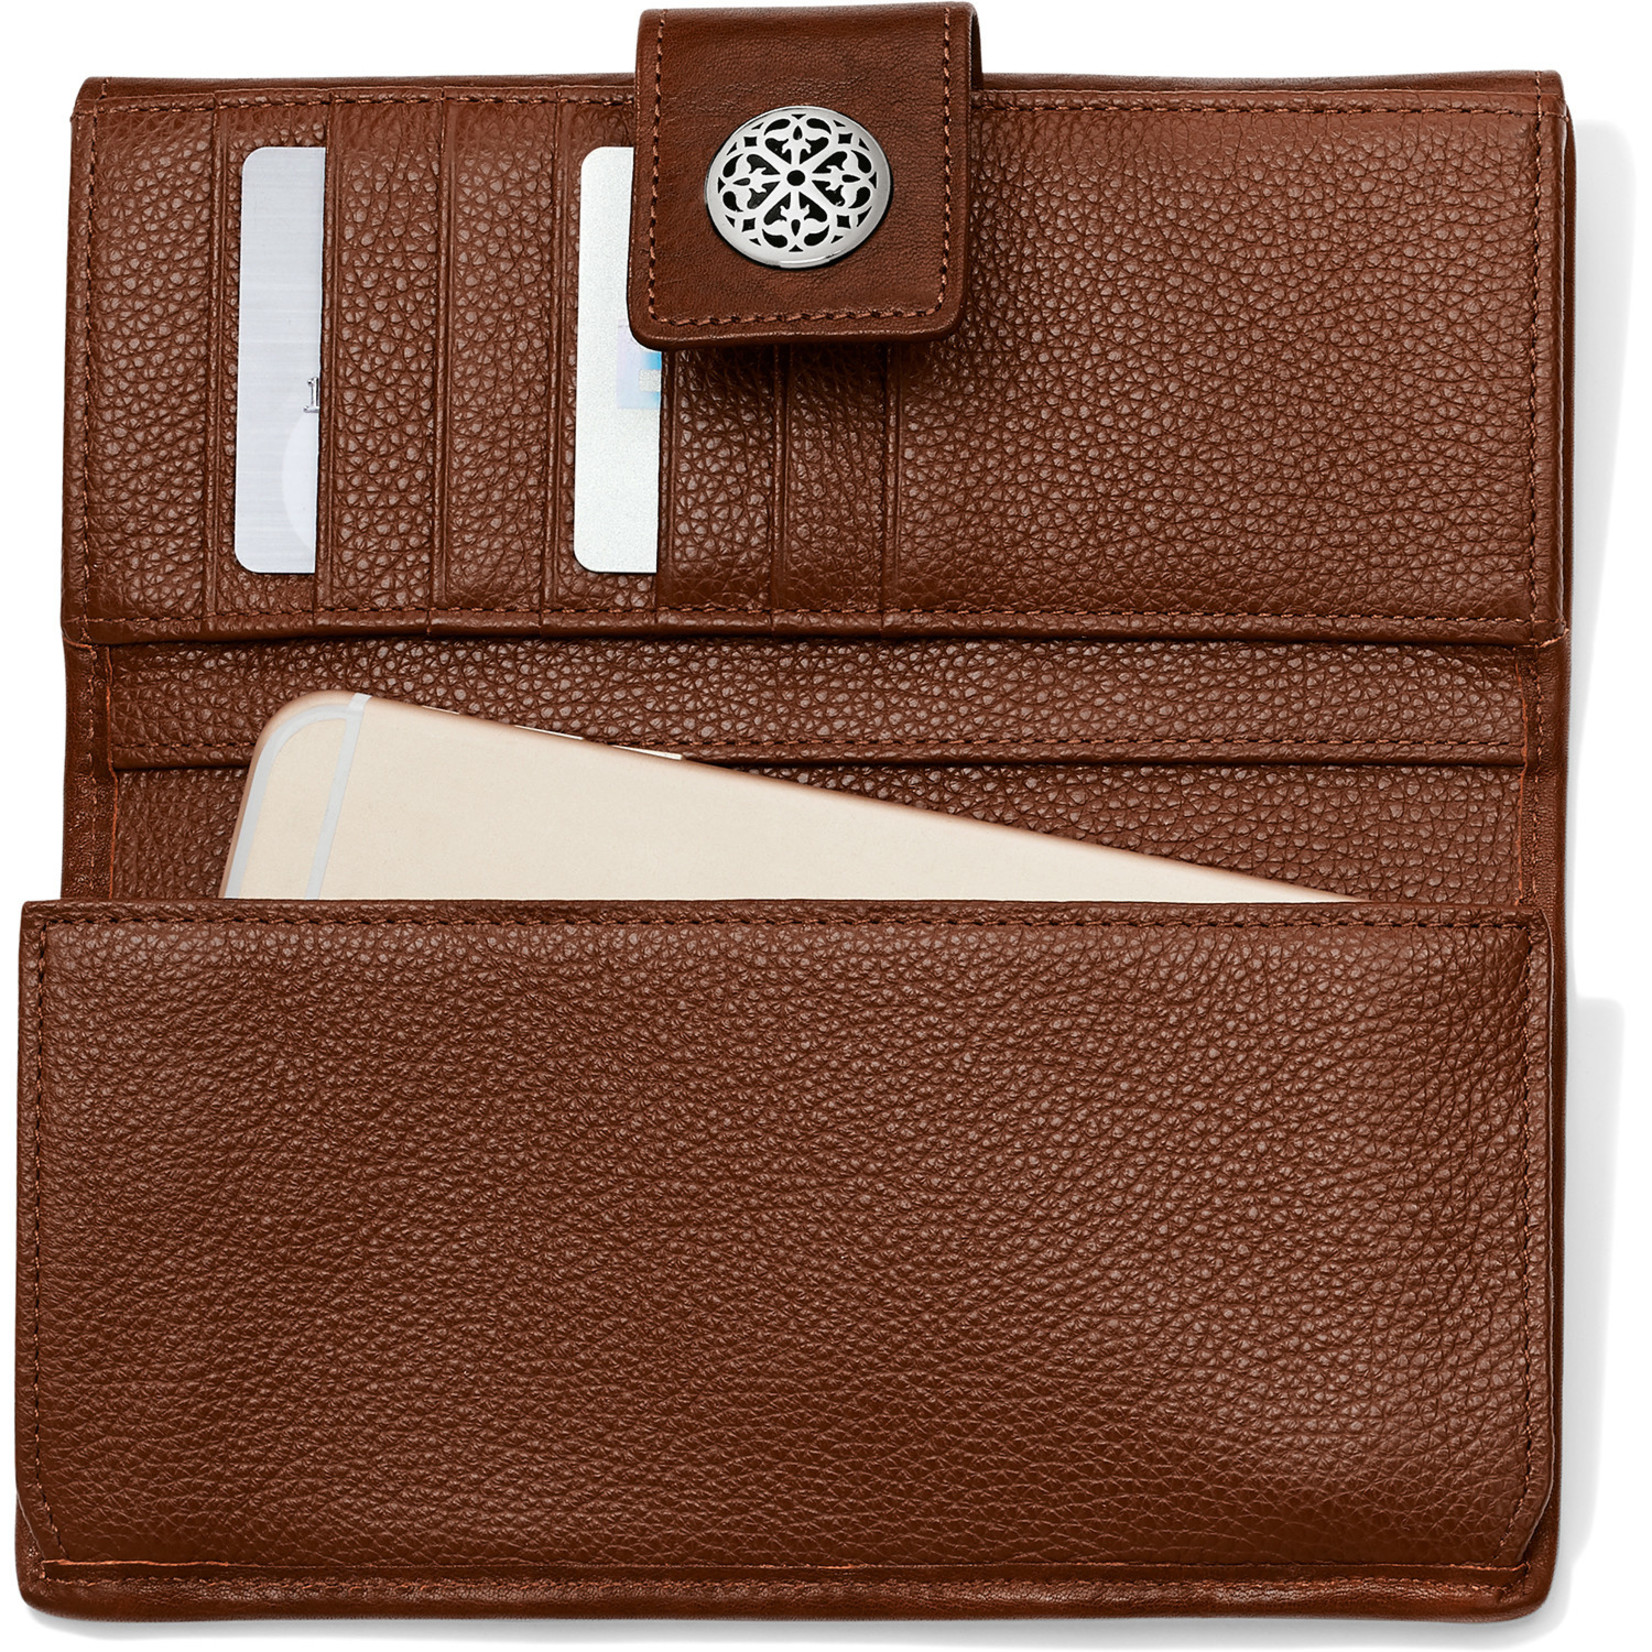 St. Tropez Slim Large Wallet Whisky